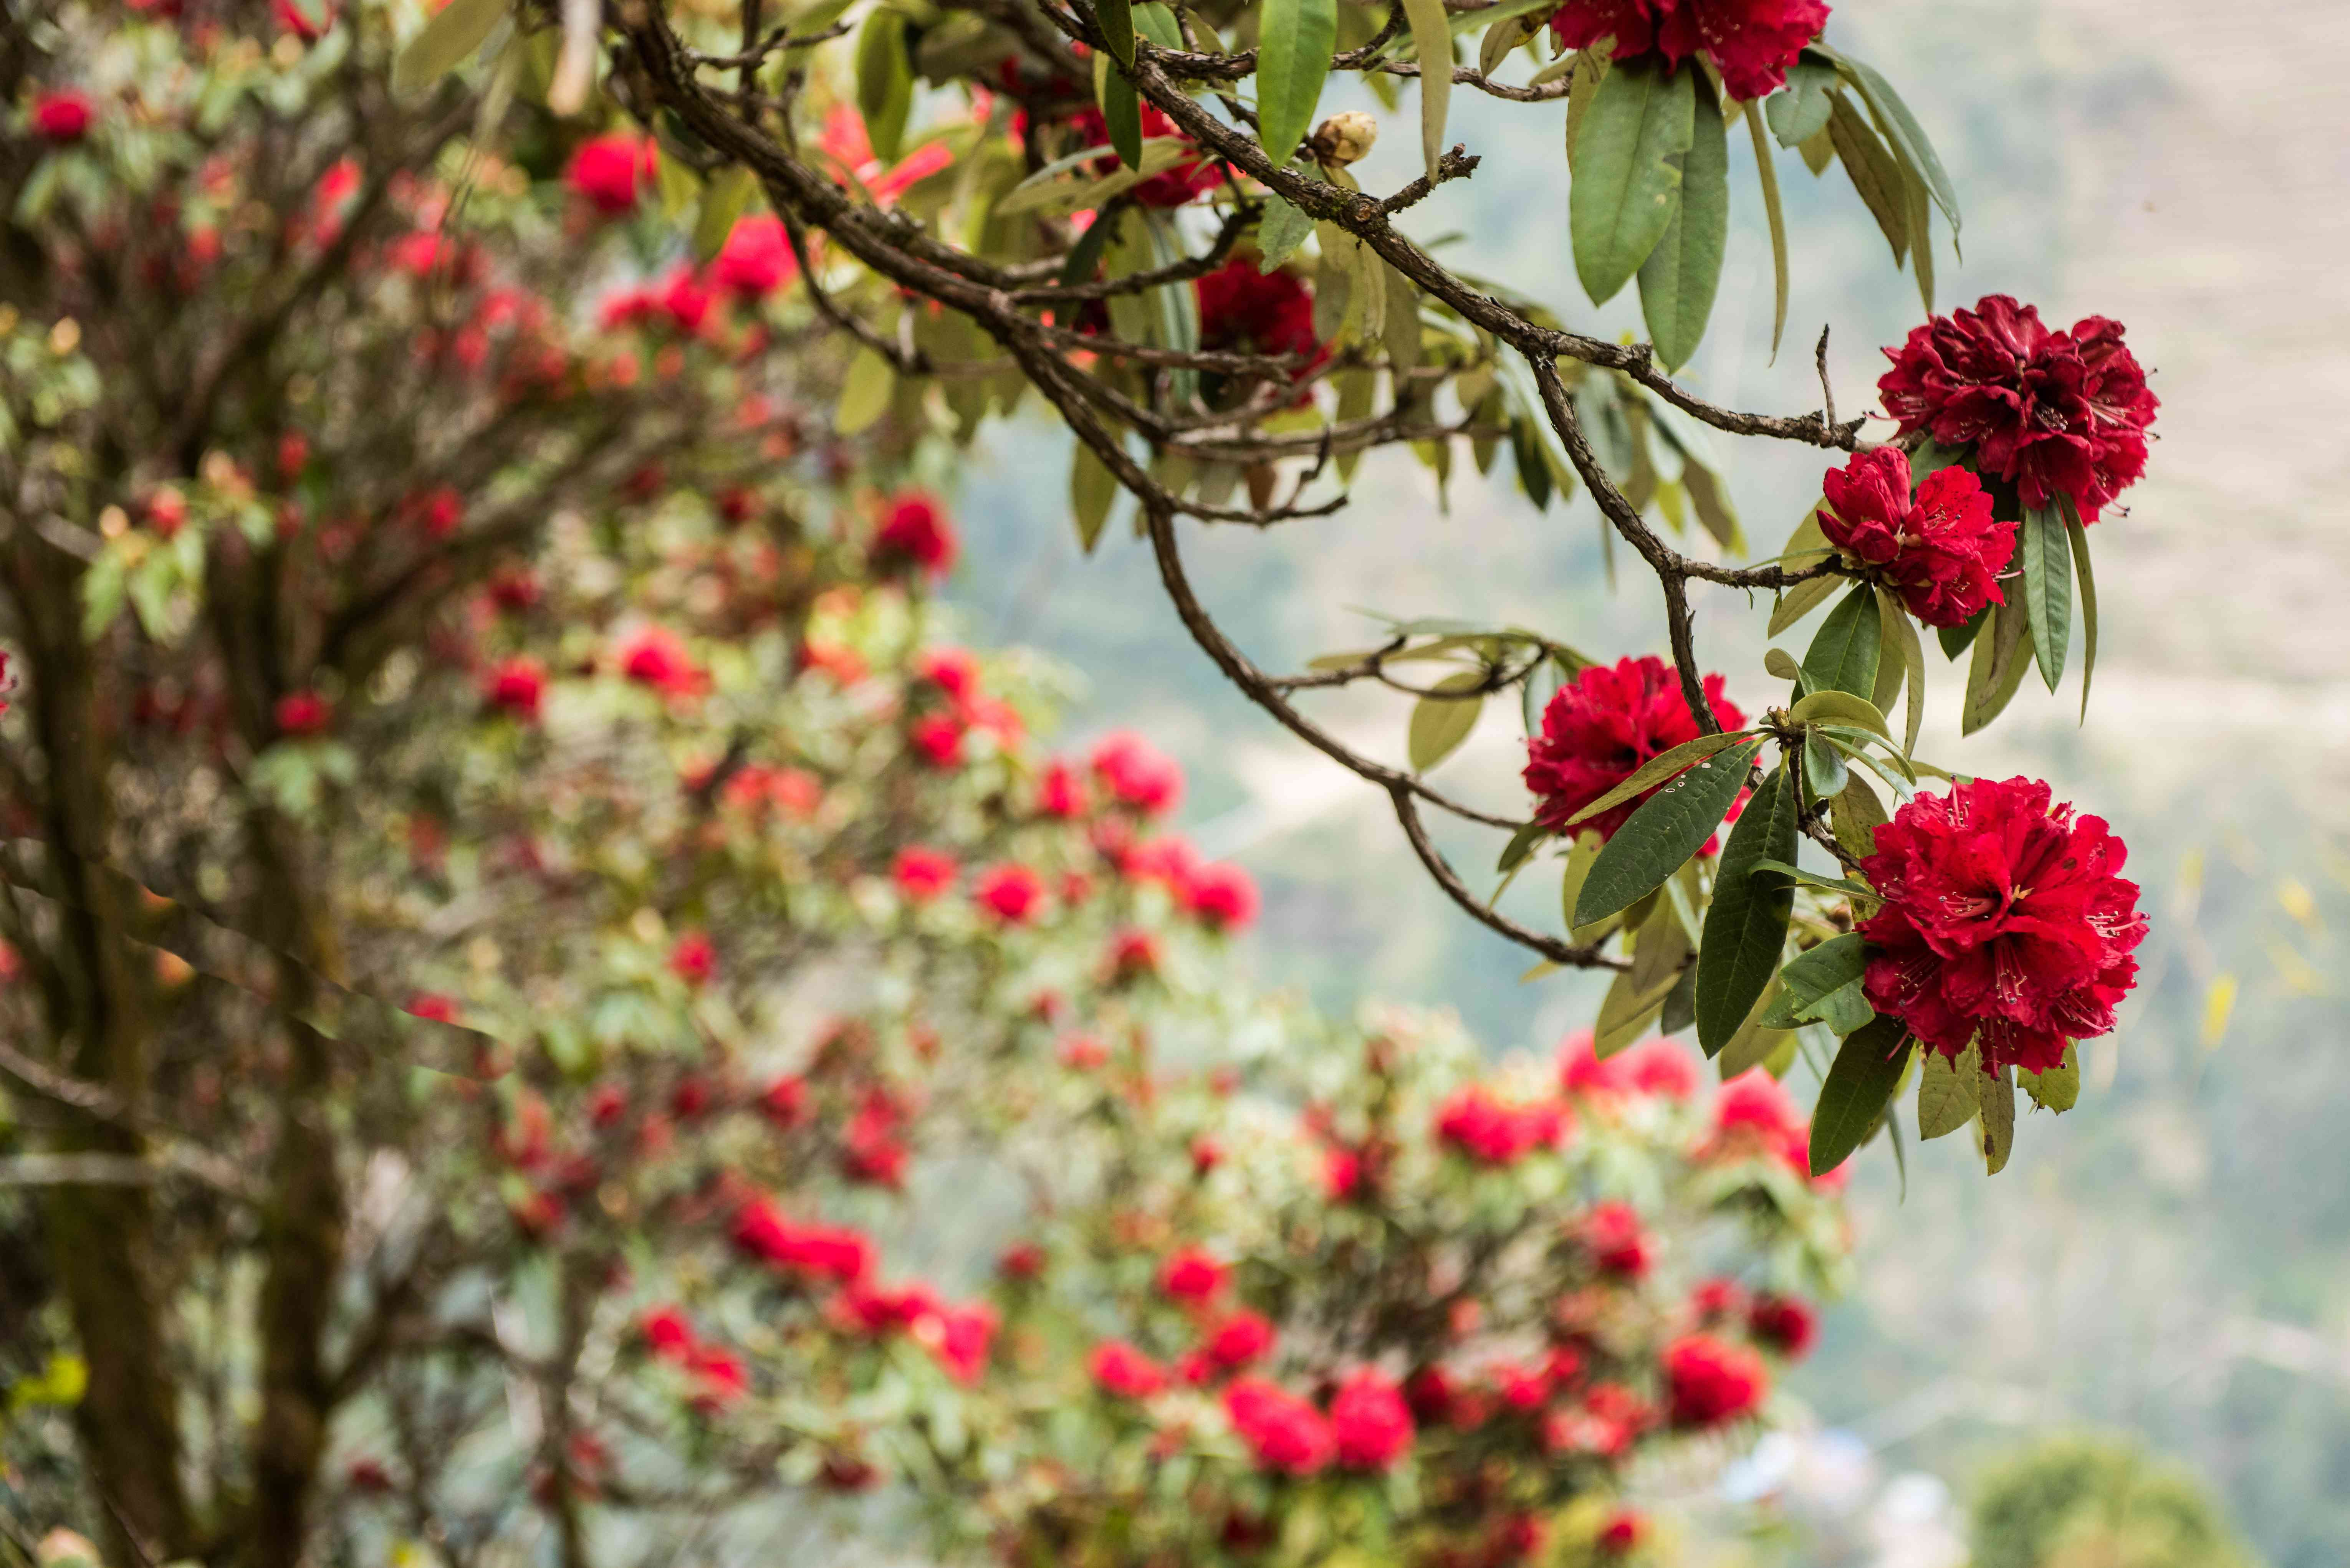 rhododendron flowers blooming in Nepal